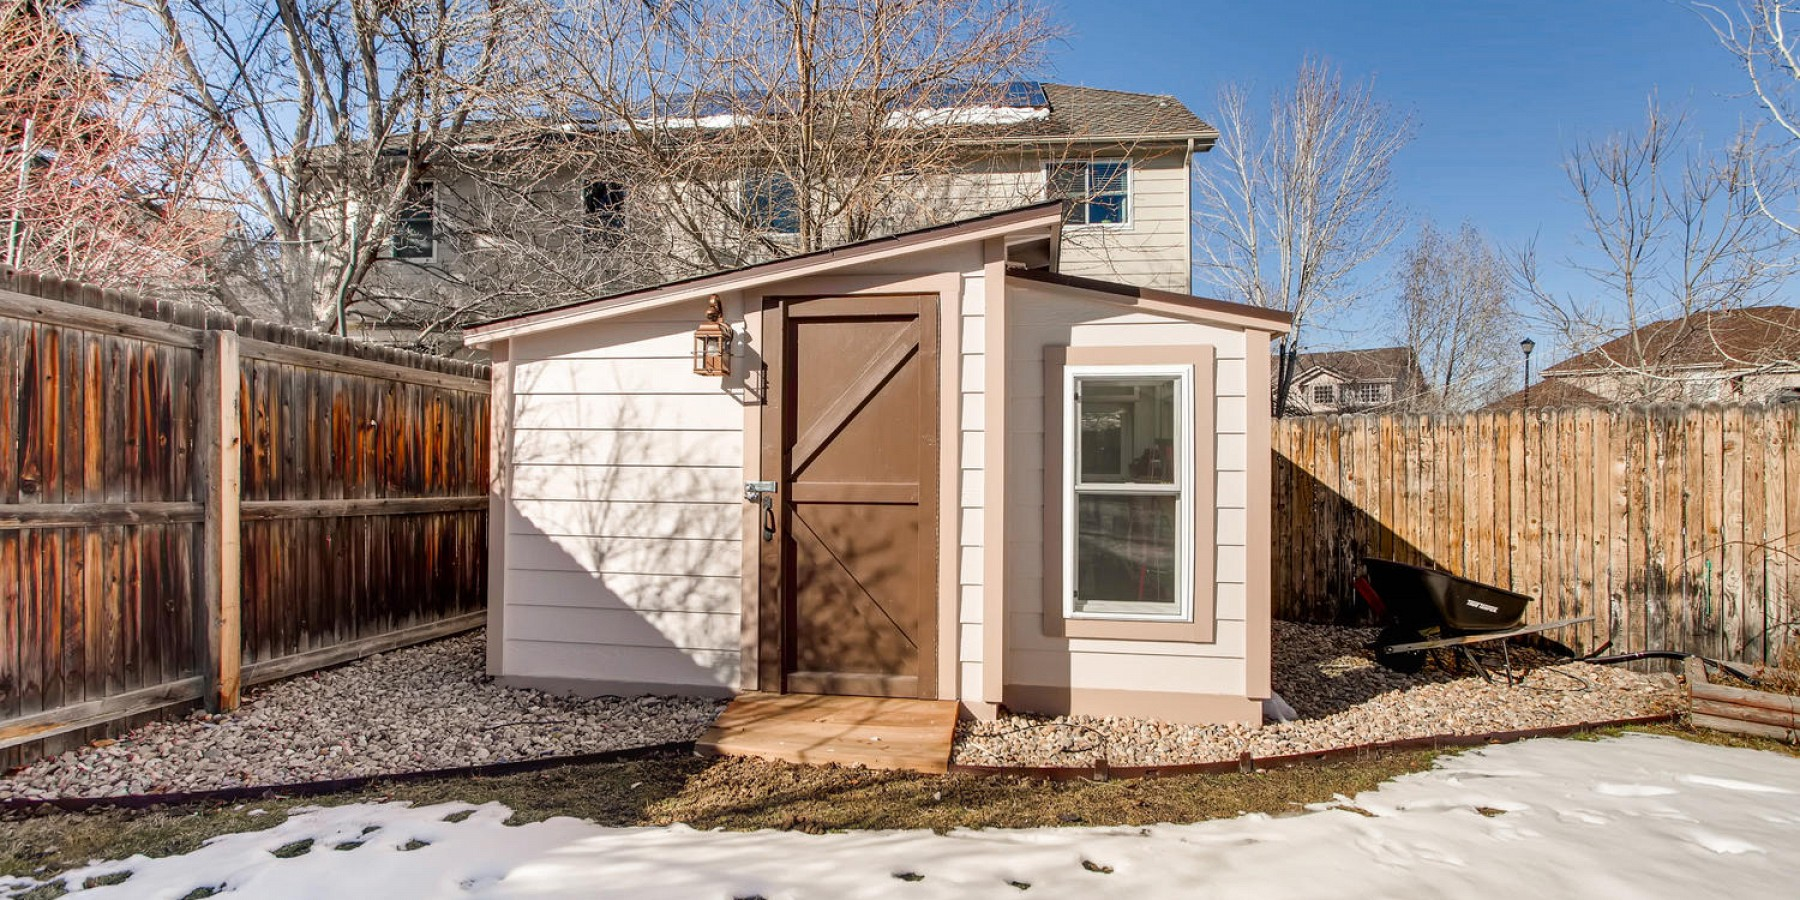 5691 South Estes Way, Littleton, CO 80123